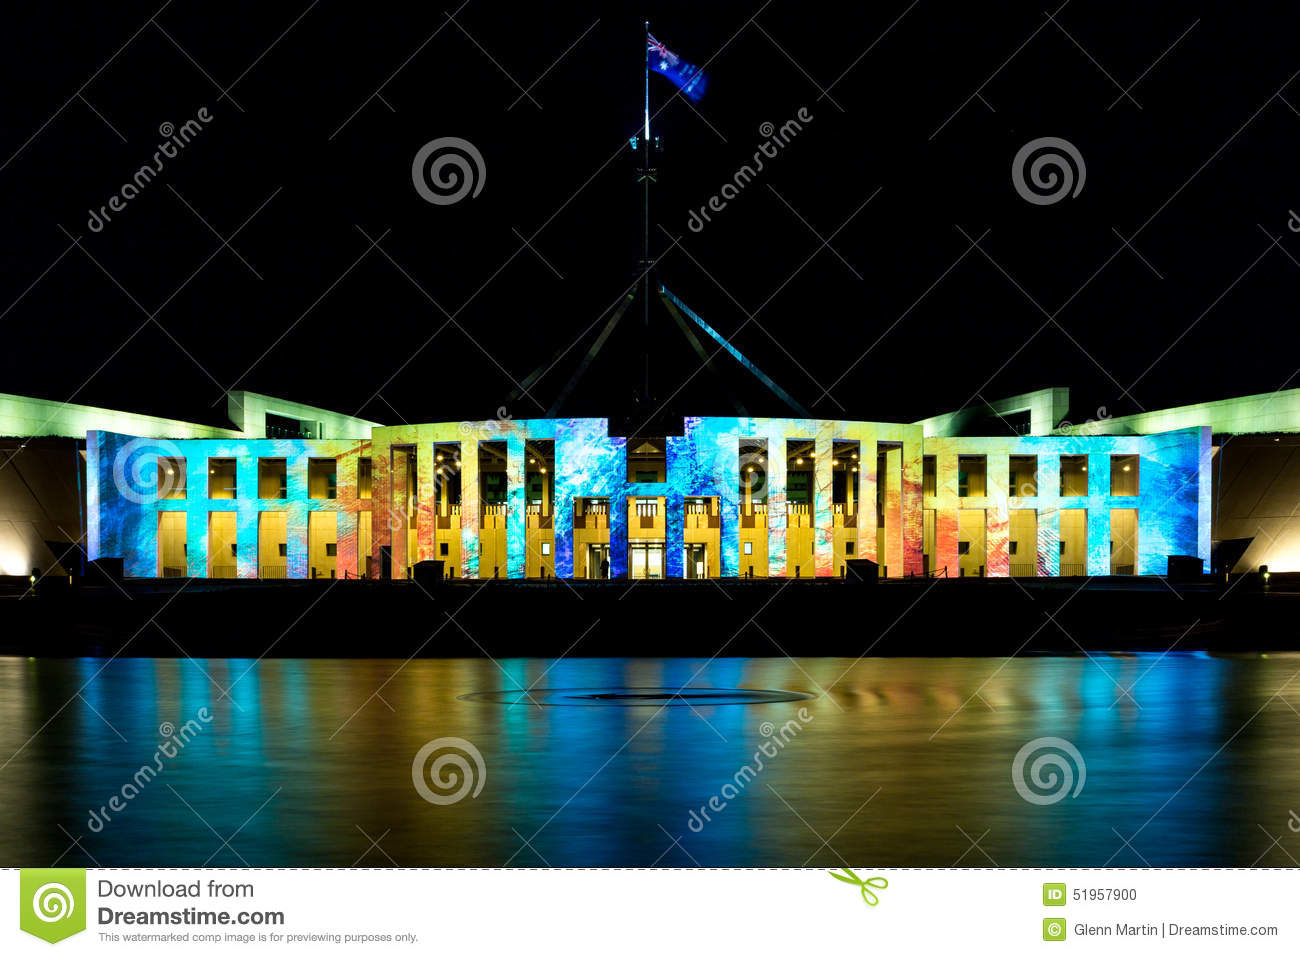 Parliamenet House at Enlighten 2015